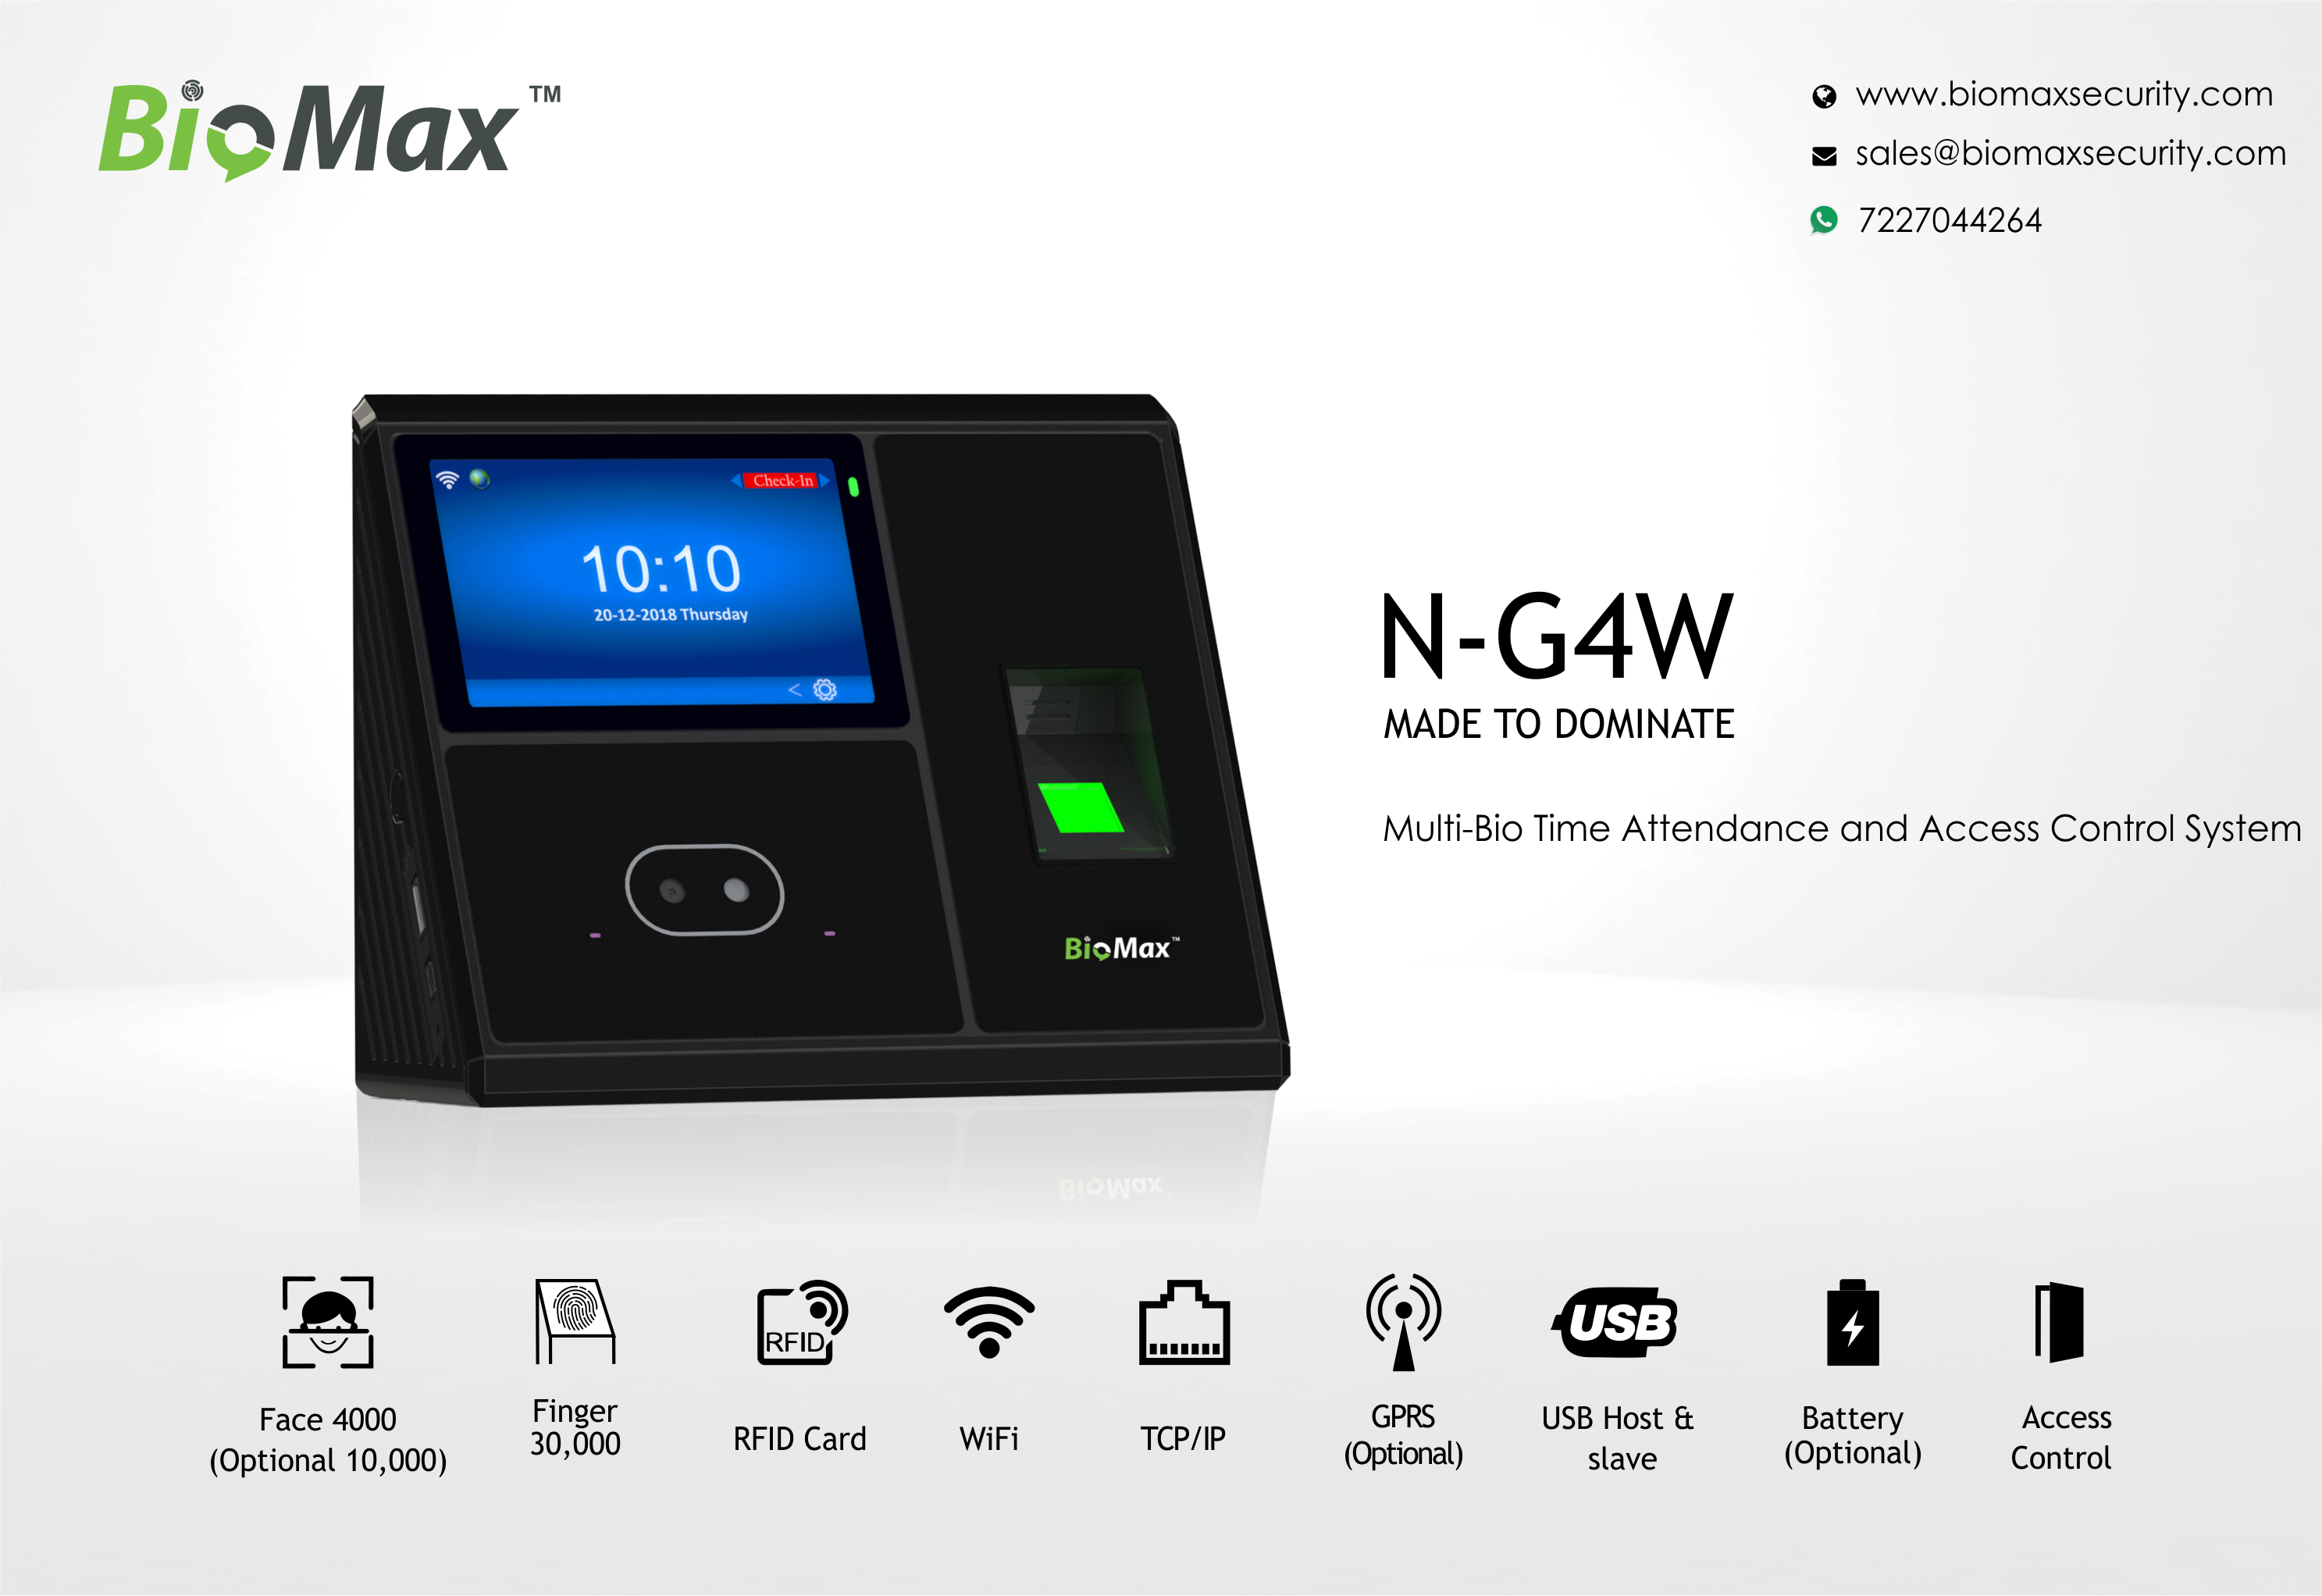 BioMax NG4W MultiBio Time Attendance and Access